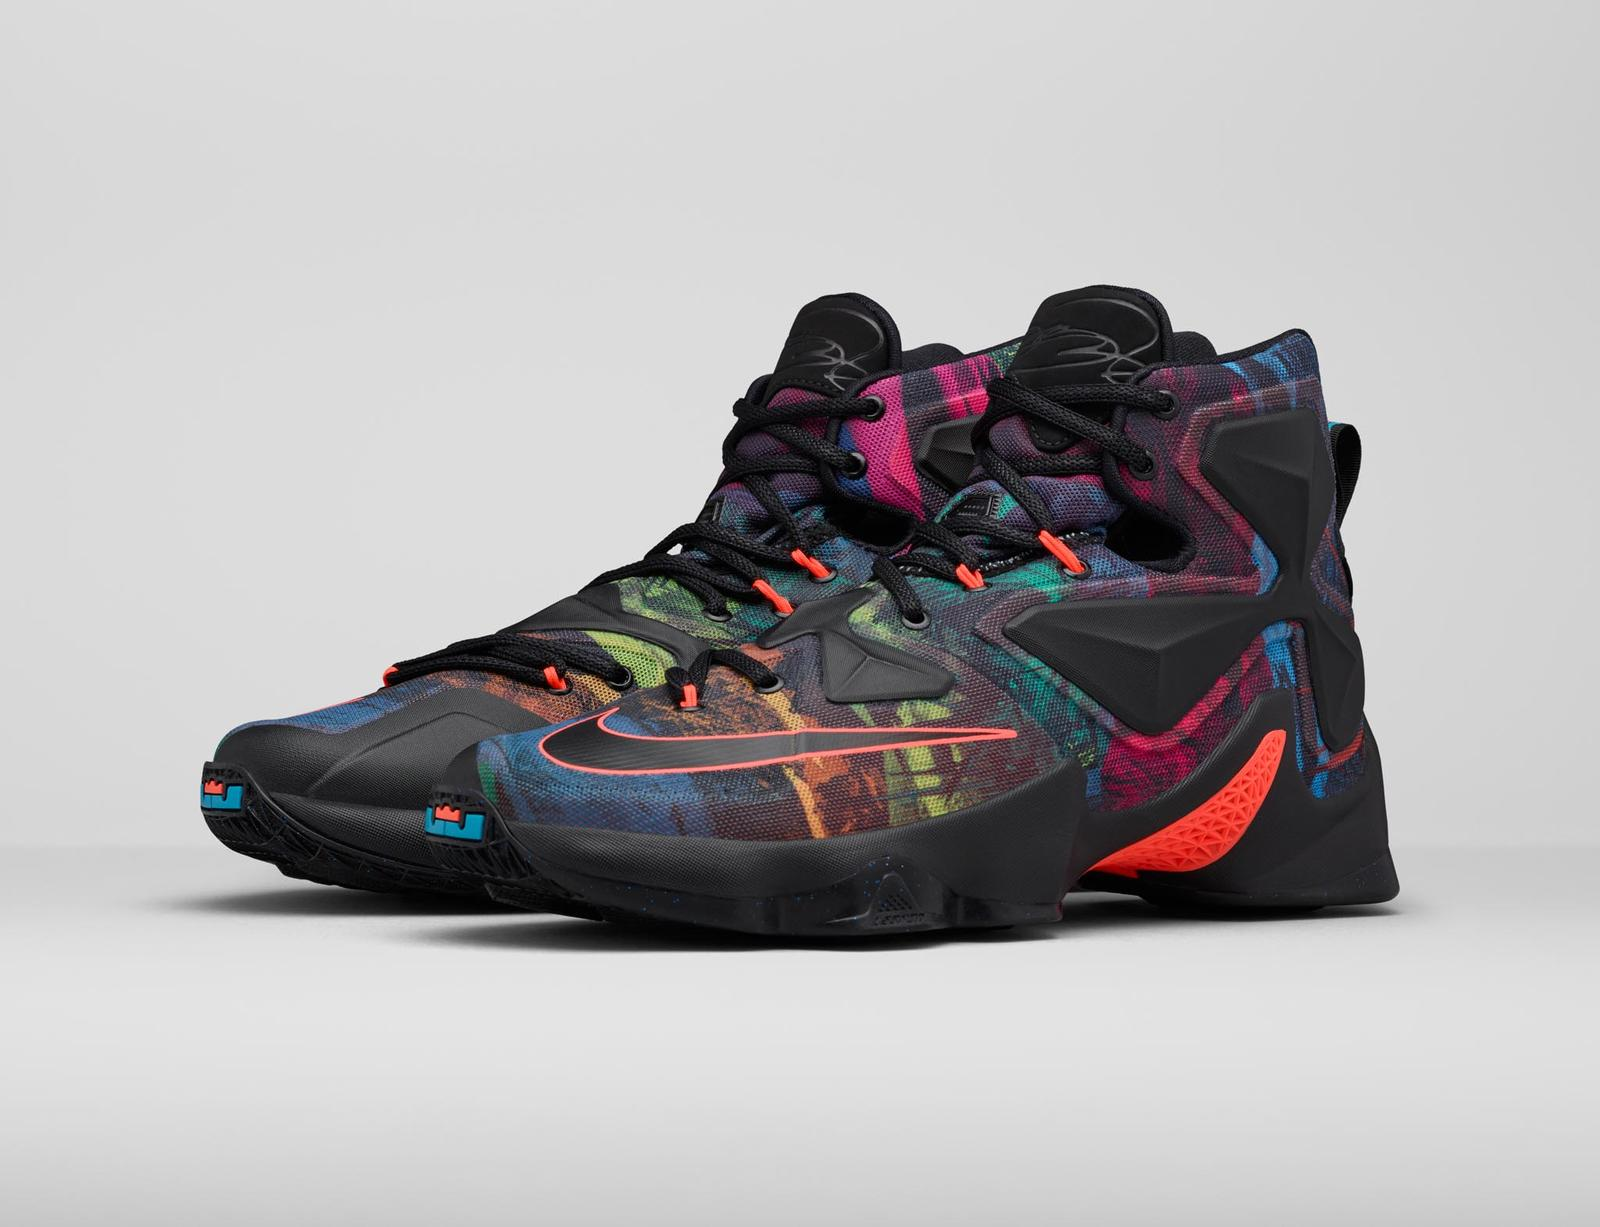 04d98d8b795 Introducing the LEBRON 13 Akronite Philosophy Shoe - Nike News